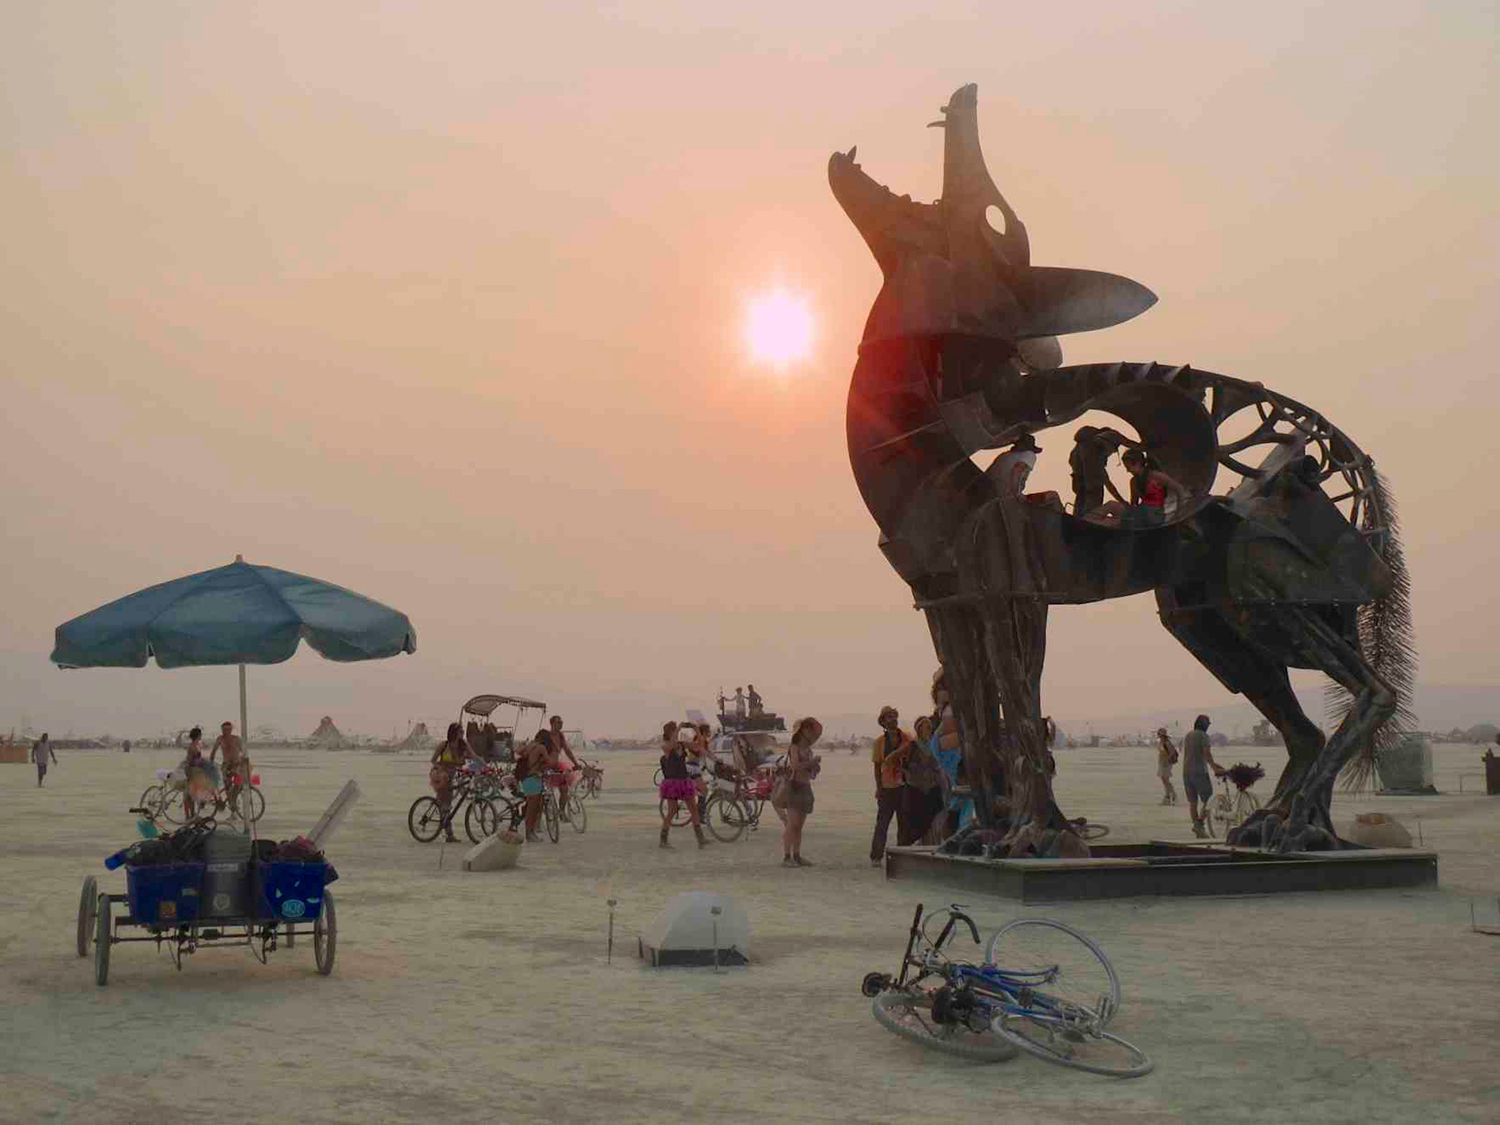 Coyote steel sculpture in the middle of Burning Man